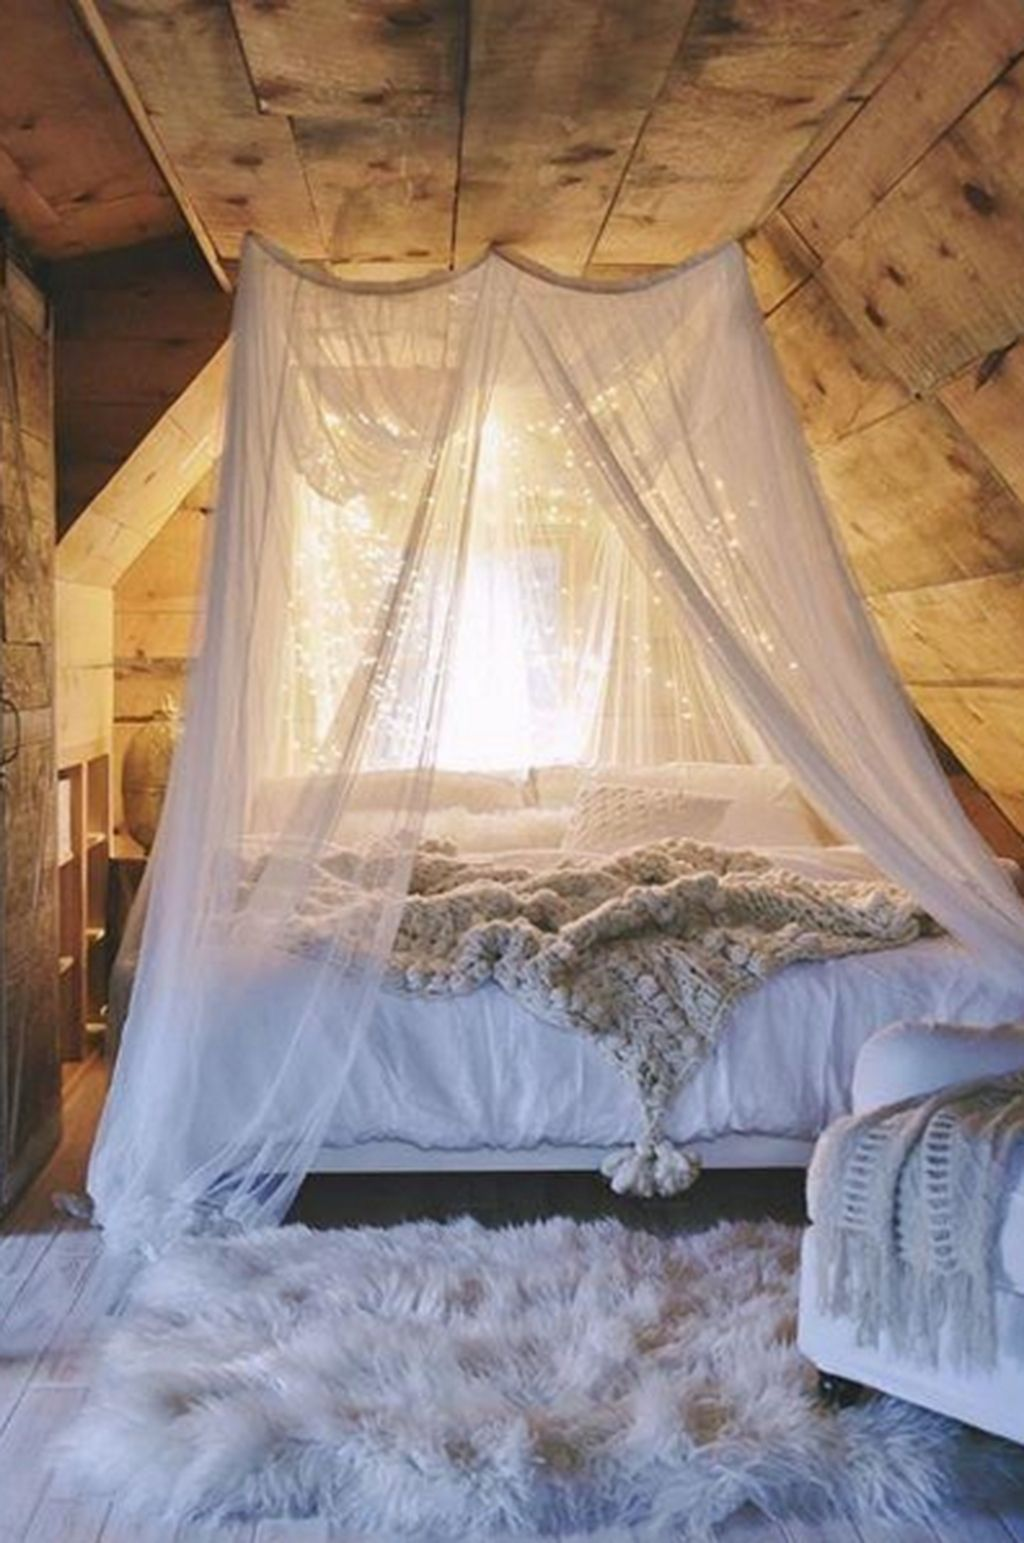 41 Glamorous Canopy Beds Ideas For Romantic Bedroom images